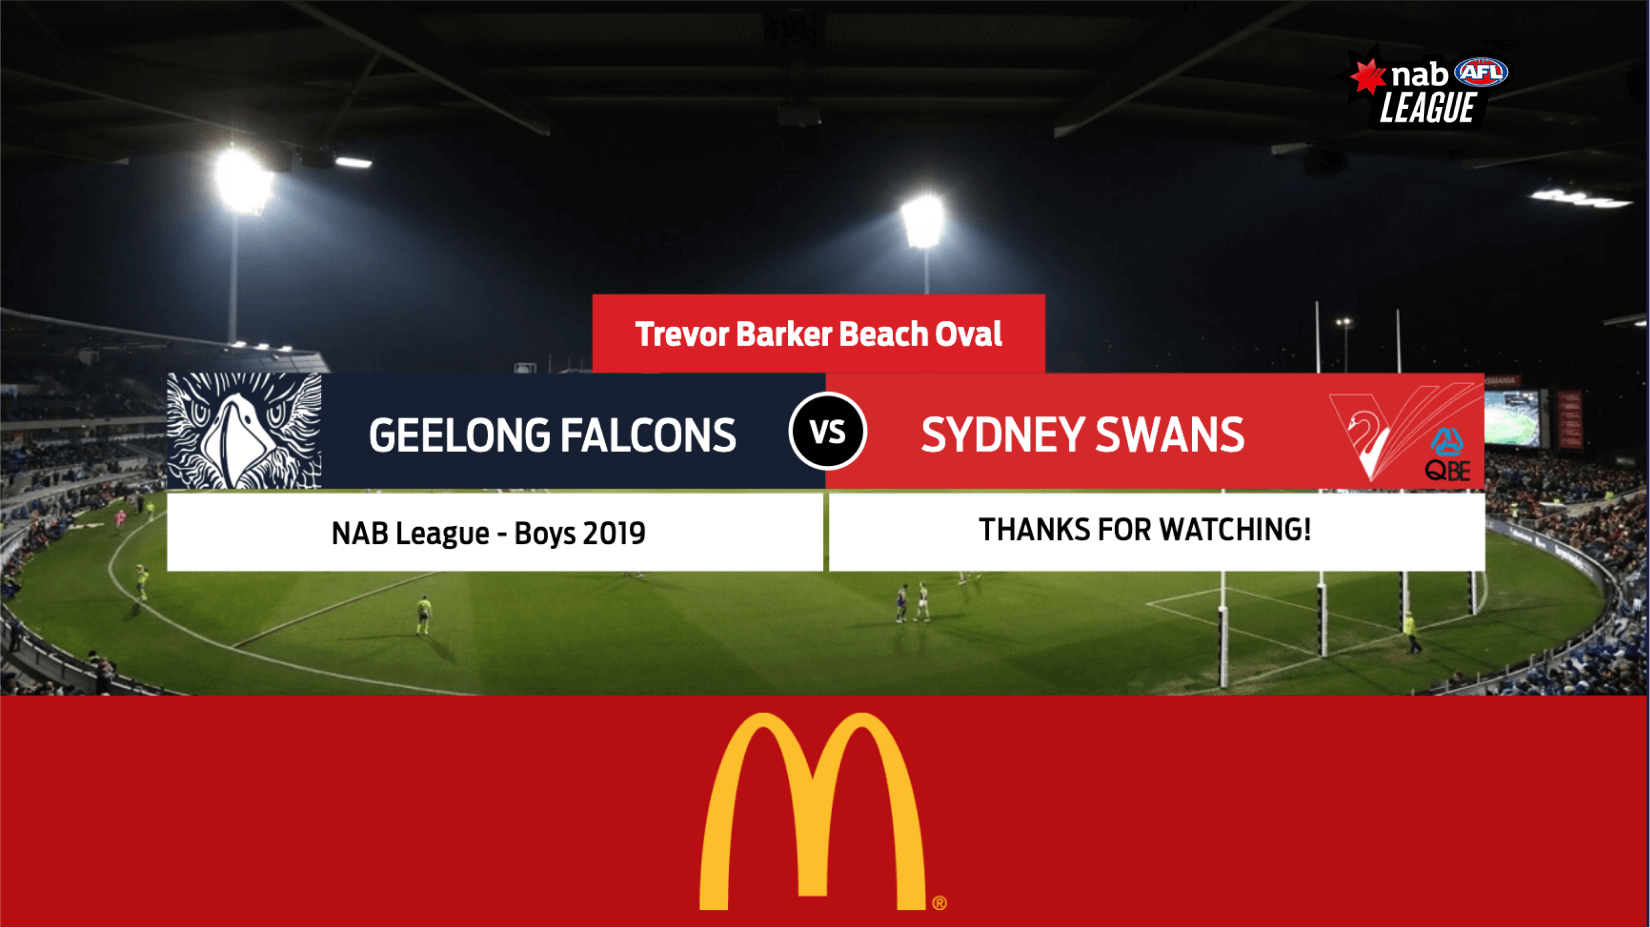 A McDonald's ad shown during an under-19 Australian rules football livestream broadcast. Powered by LIGR.Live.